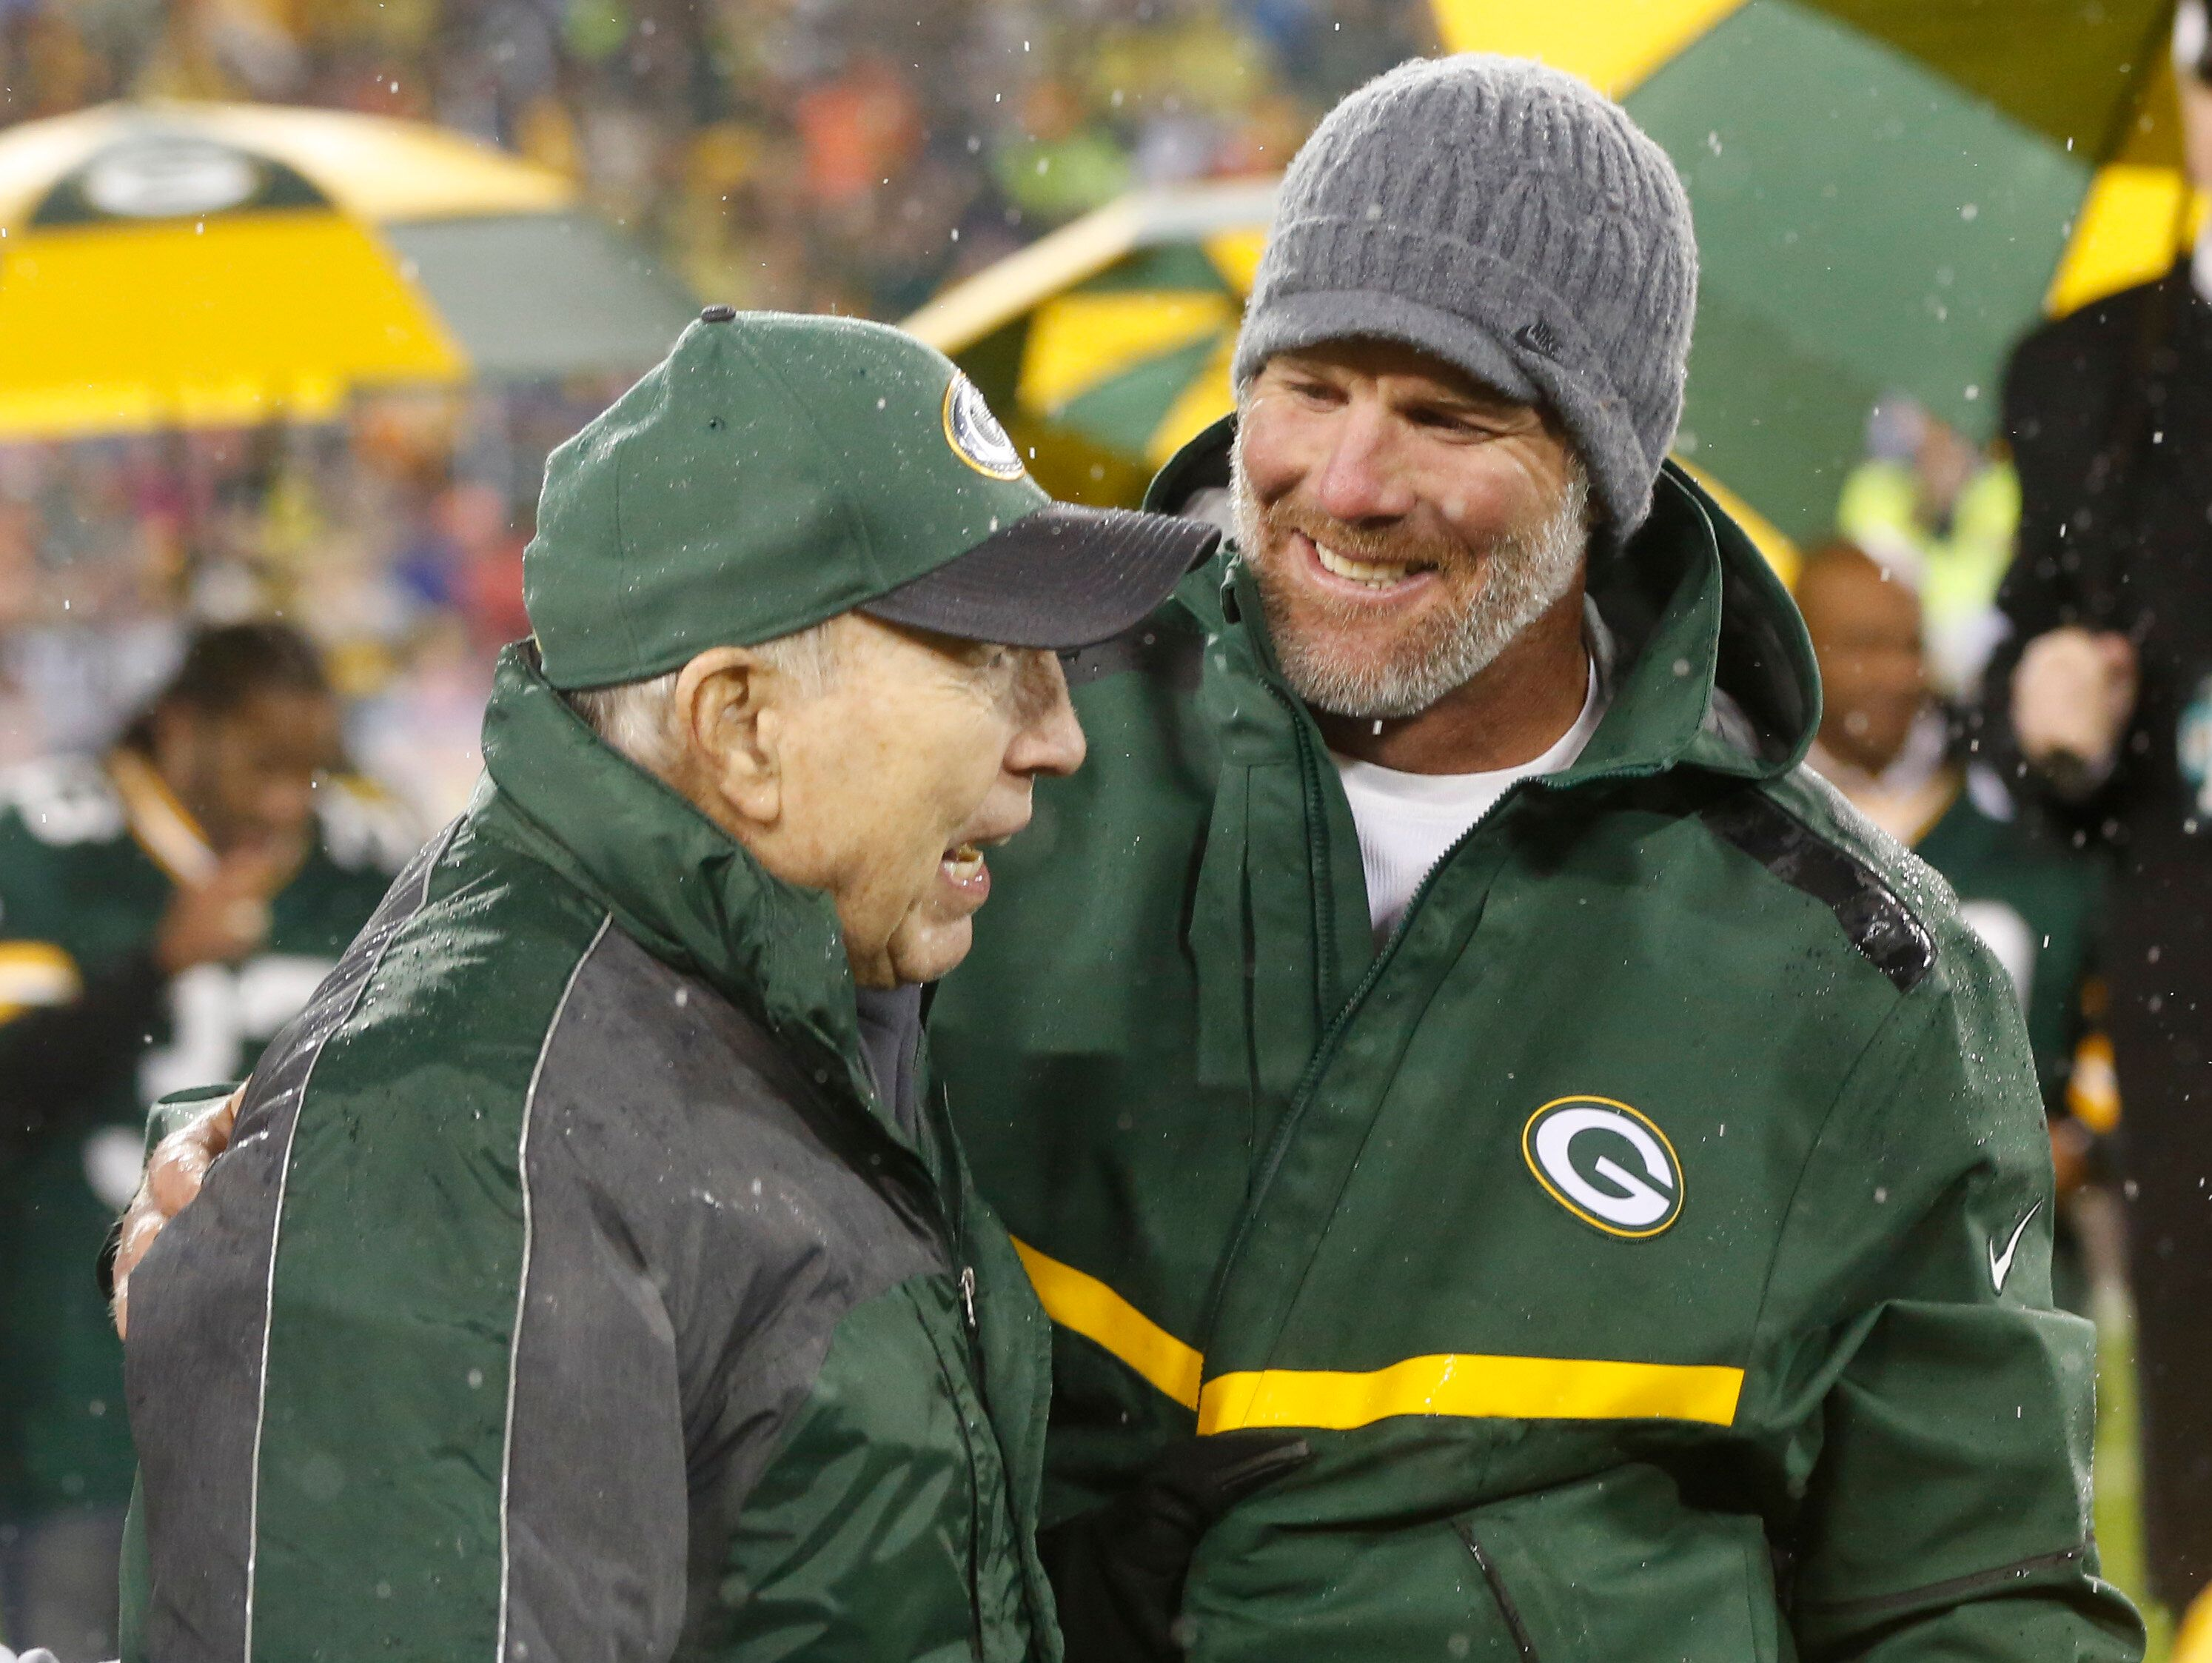 Brett Favre smiles with Bart Starr during a ceremony at halftime of an NFL football game between the Green Bay Packers and Chicago Bears Thursday, Nov. 26, 2015, in Green Bay, Wis. Favre's retired No. 4 and name were unveiled inside Lambeau Field during the ceremony. (AP Photo/Mike Roemer)